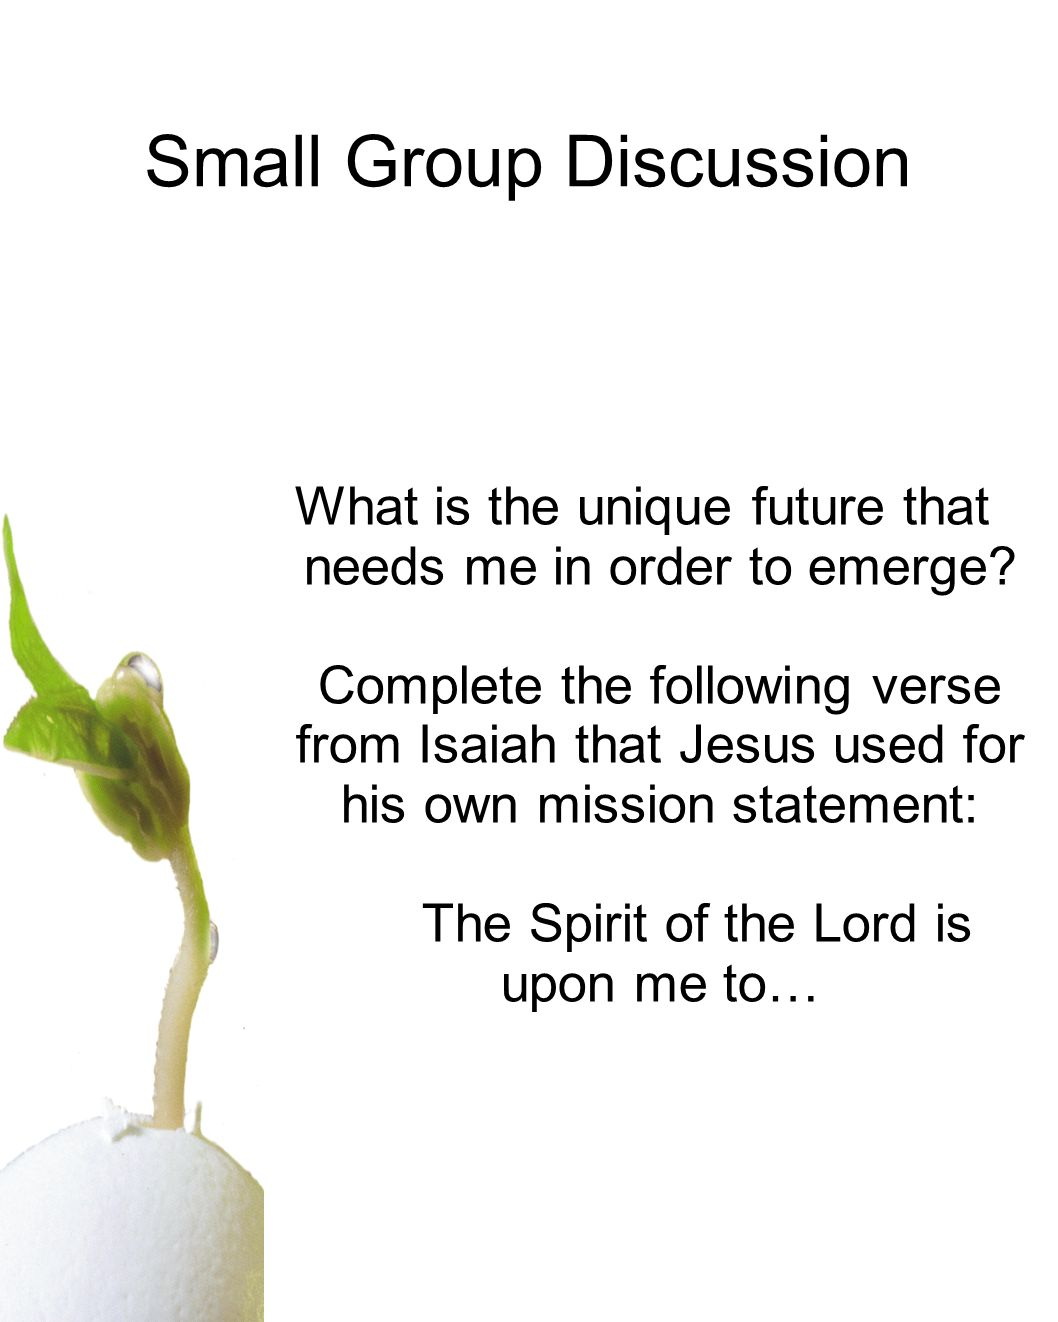 Small Group Discussion What is the unique future that needs me in order to emerge? Complete the following verse from Isaiah that Jesus used for his ow